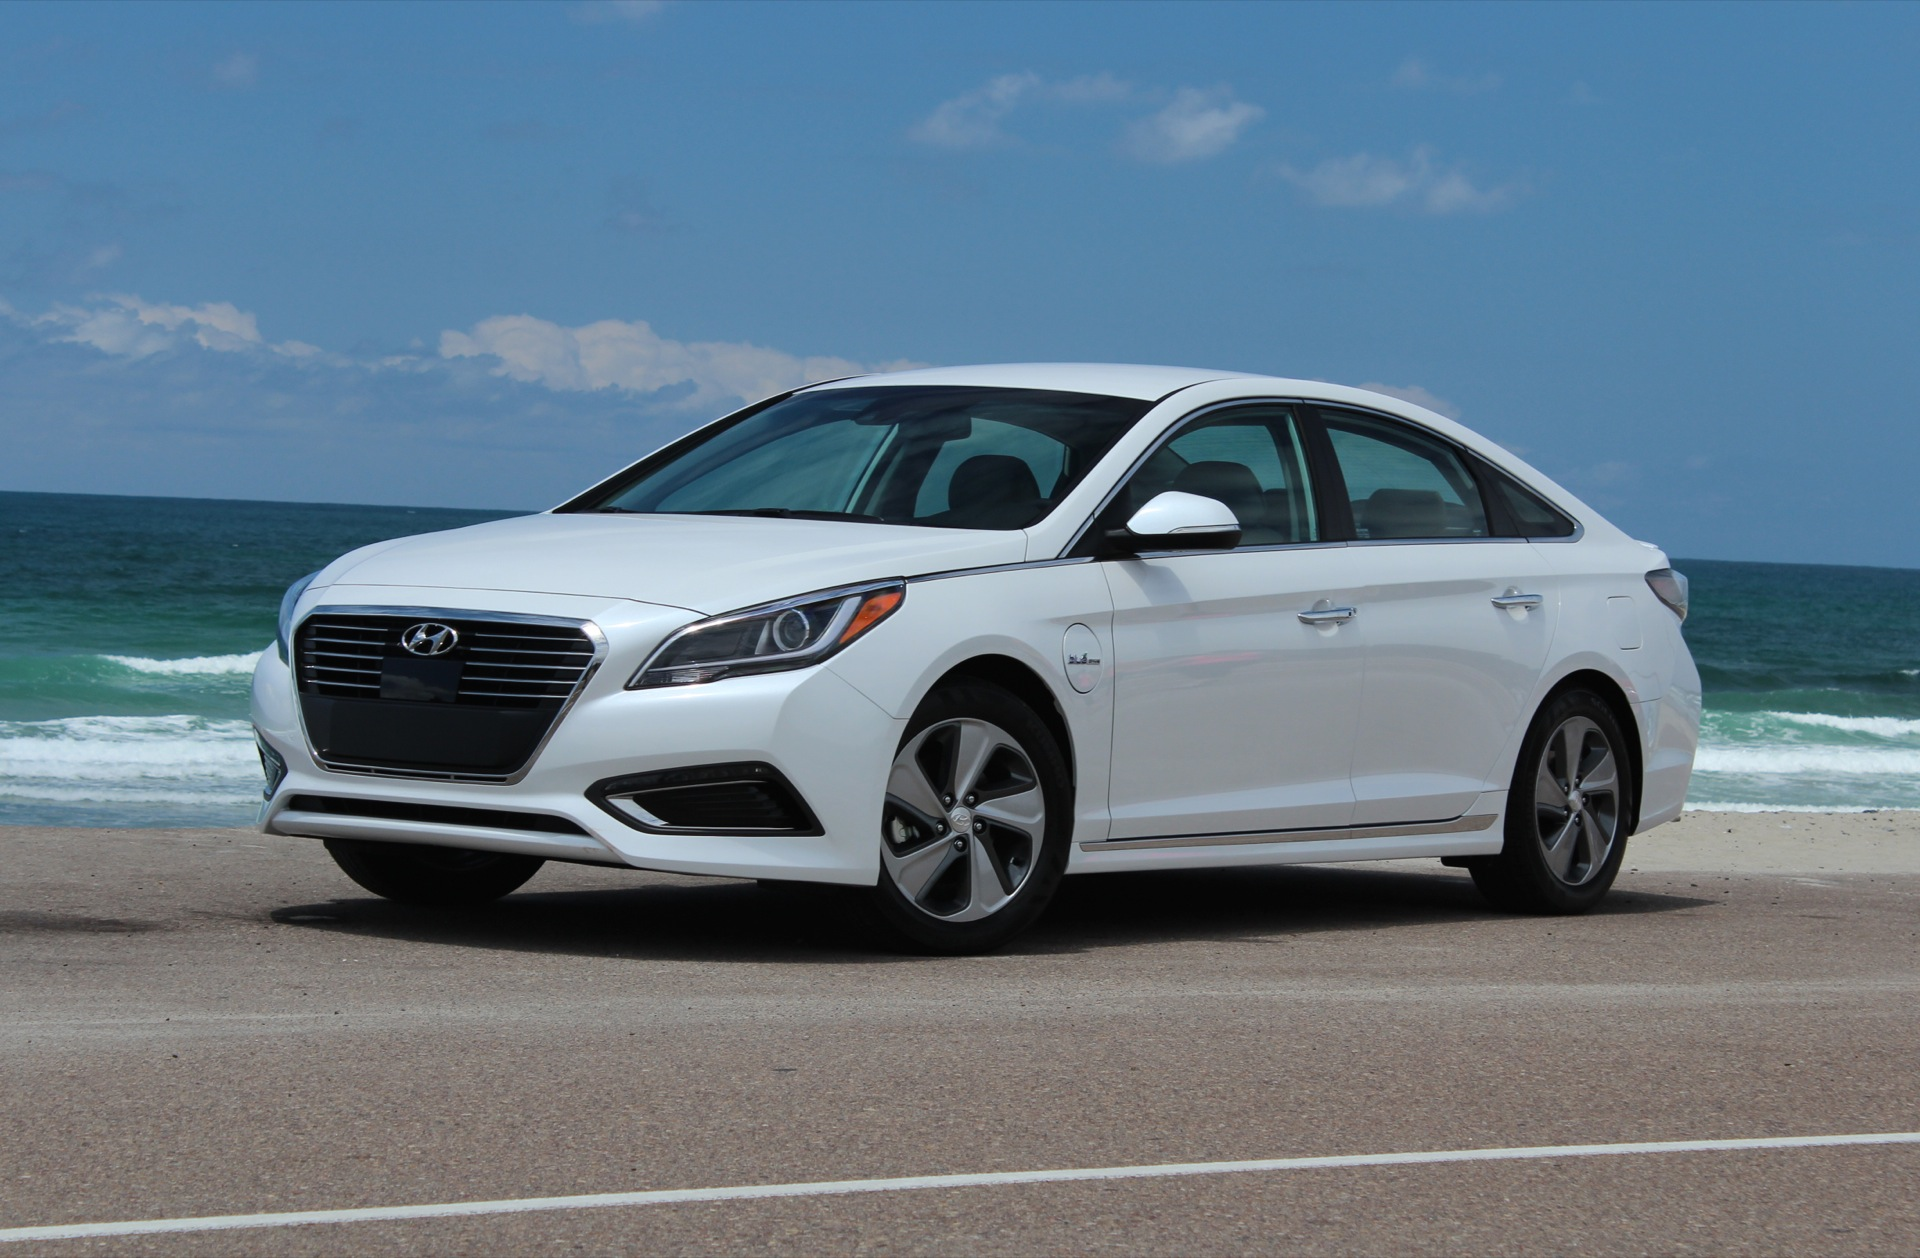 2016 hyundai sonata features review the car connection. Black Bedroom Furniture Sets. Home Design Ideas